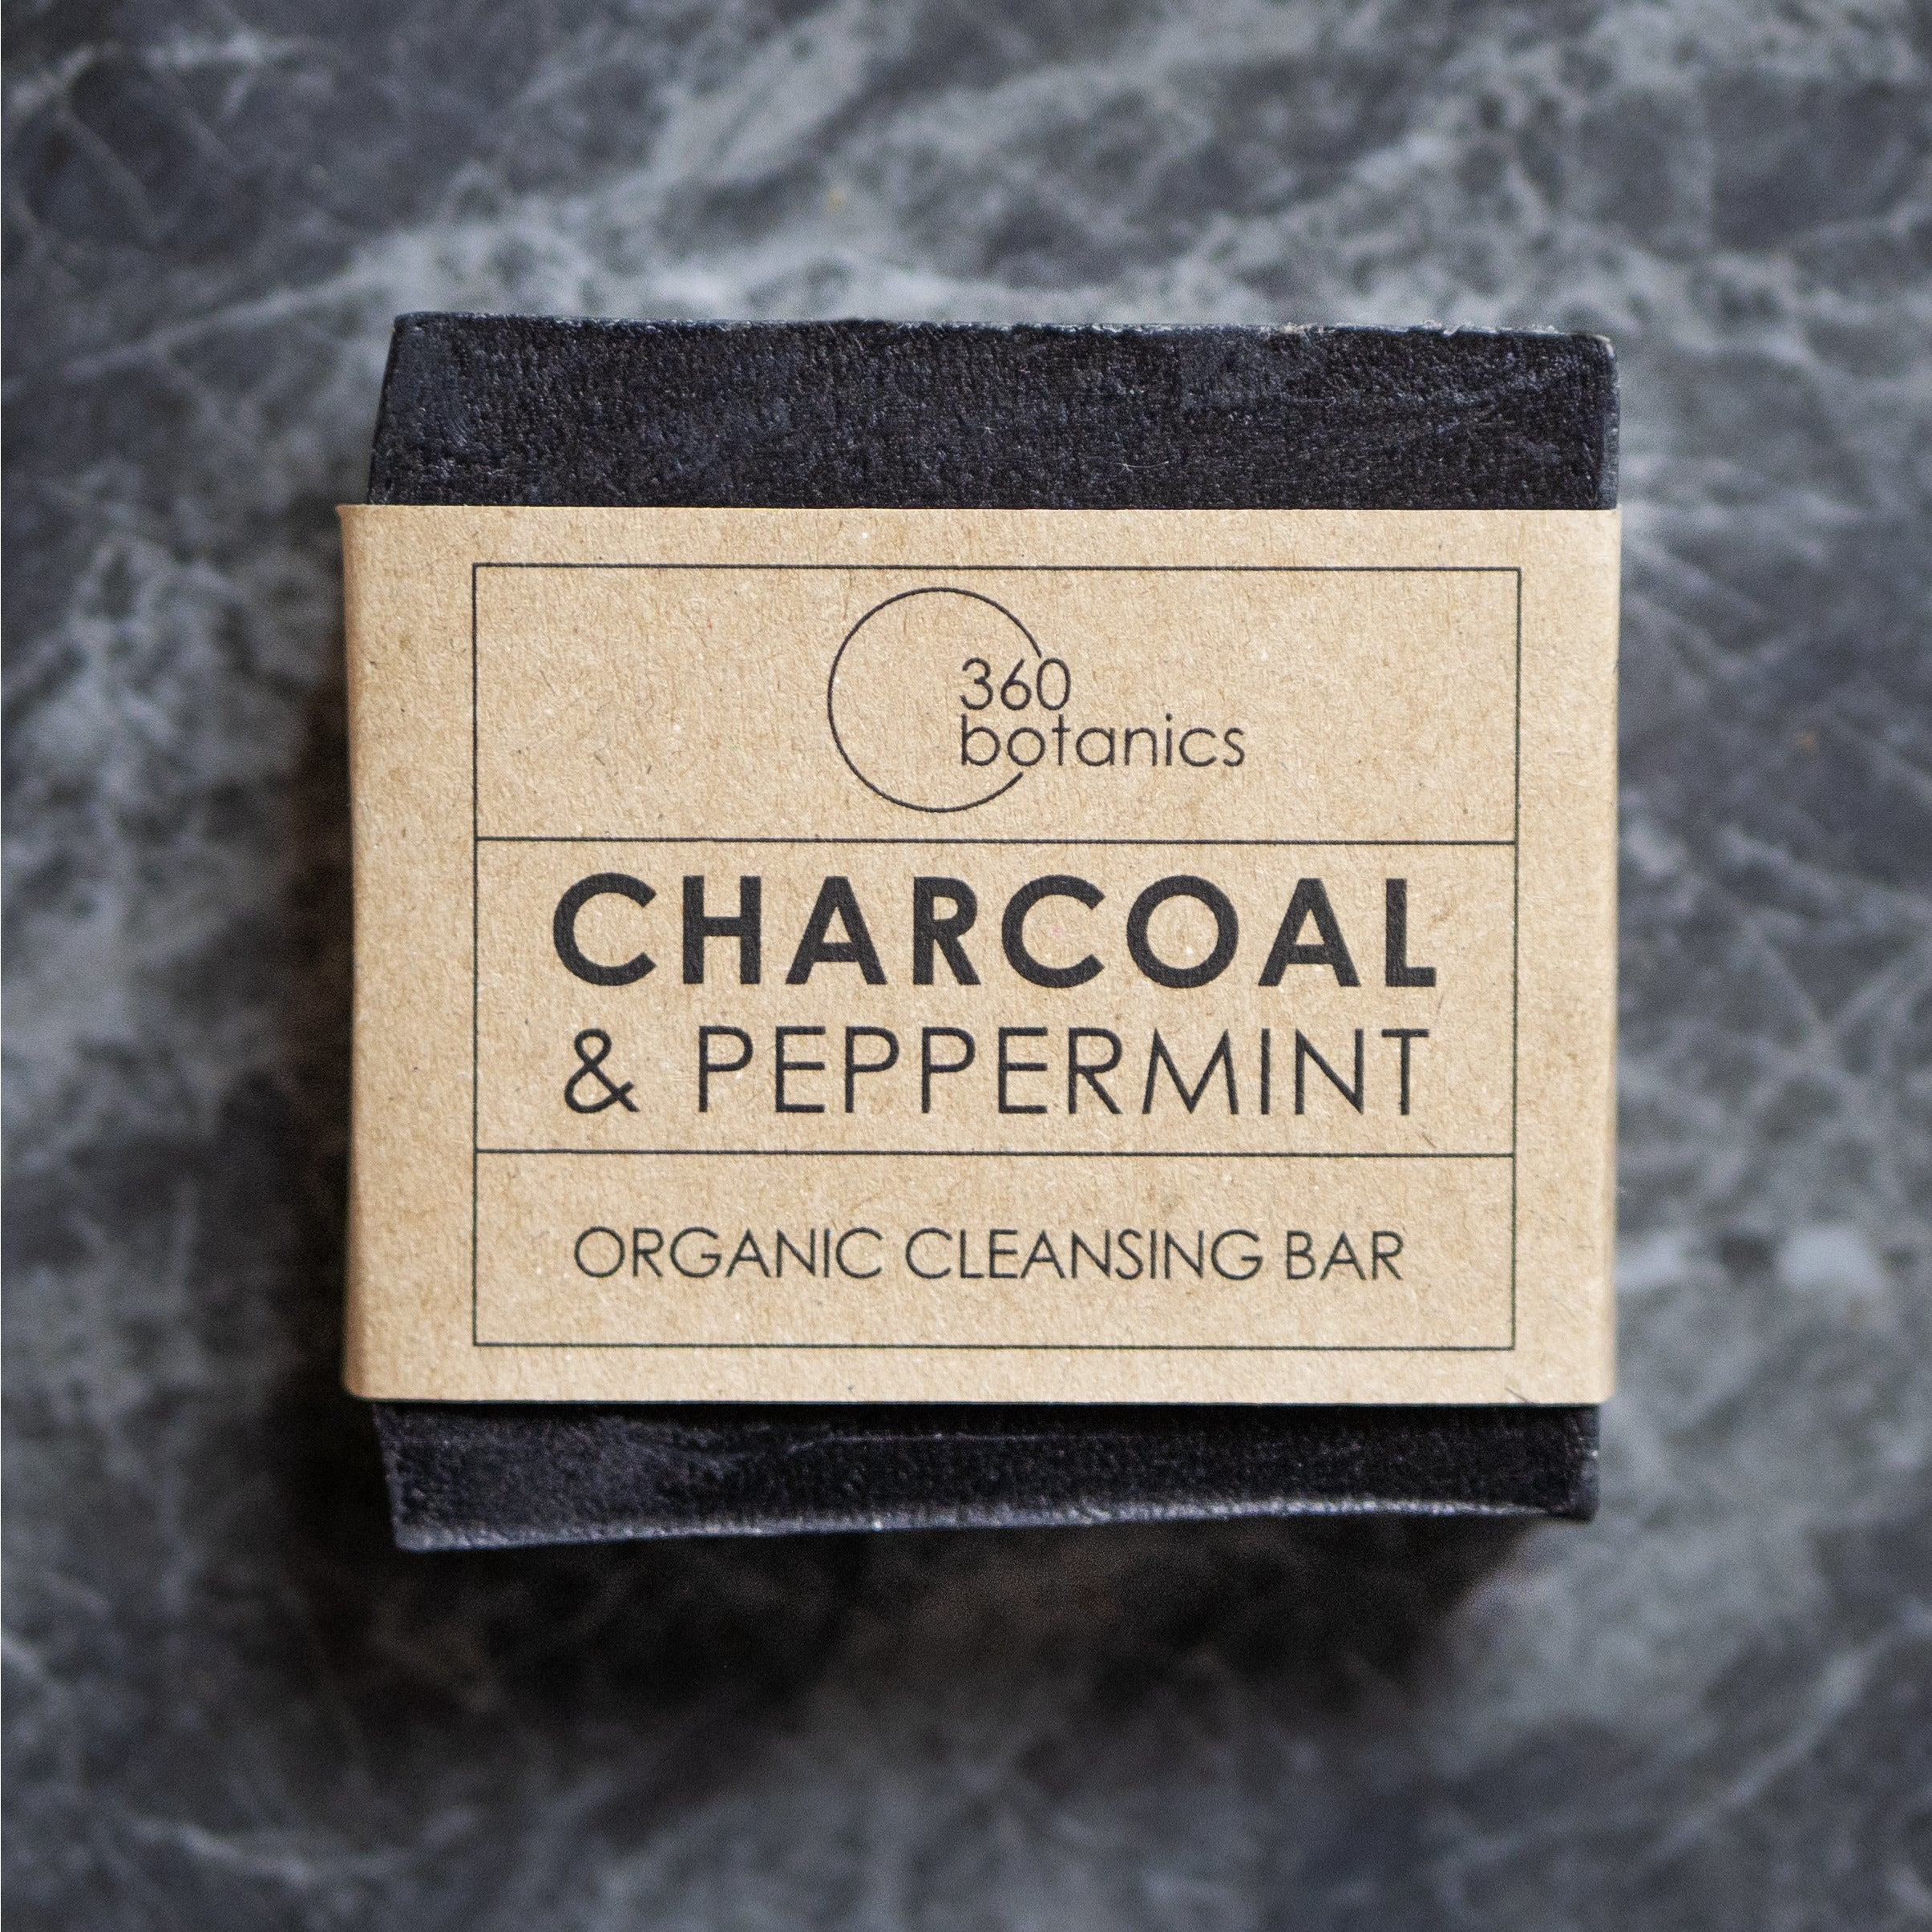 image of charcoal and peppermint soap photographed on grey marble